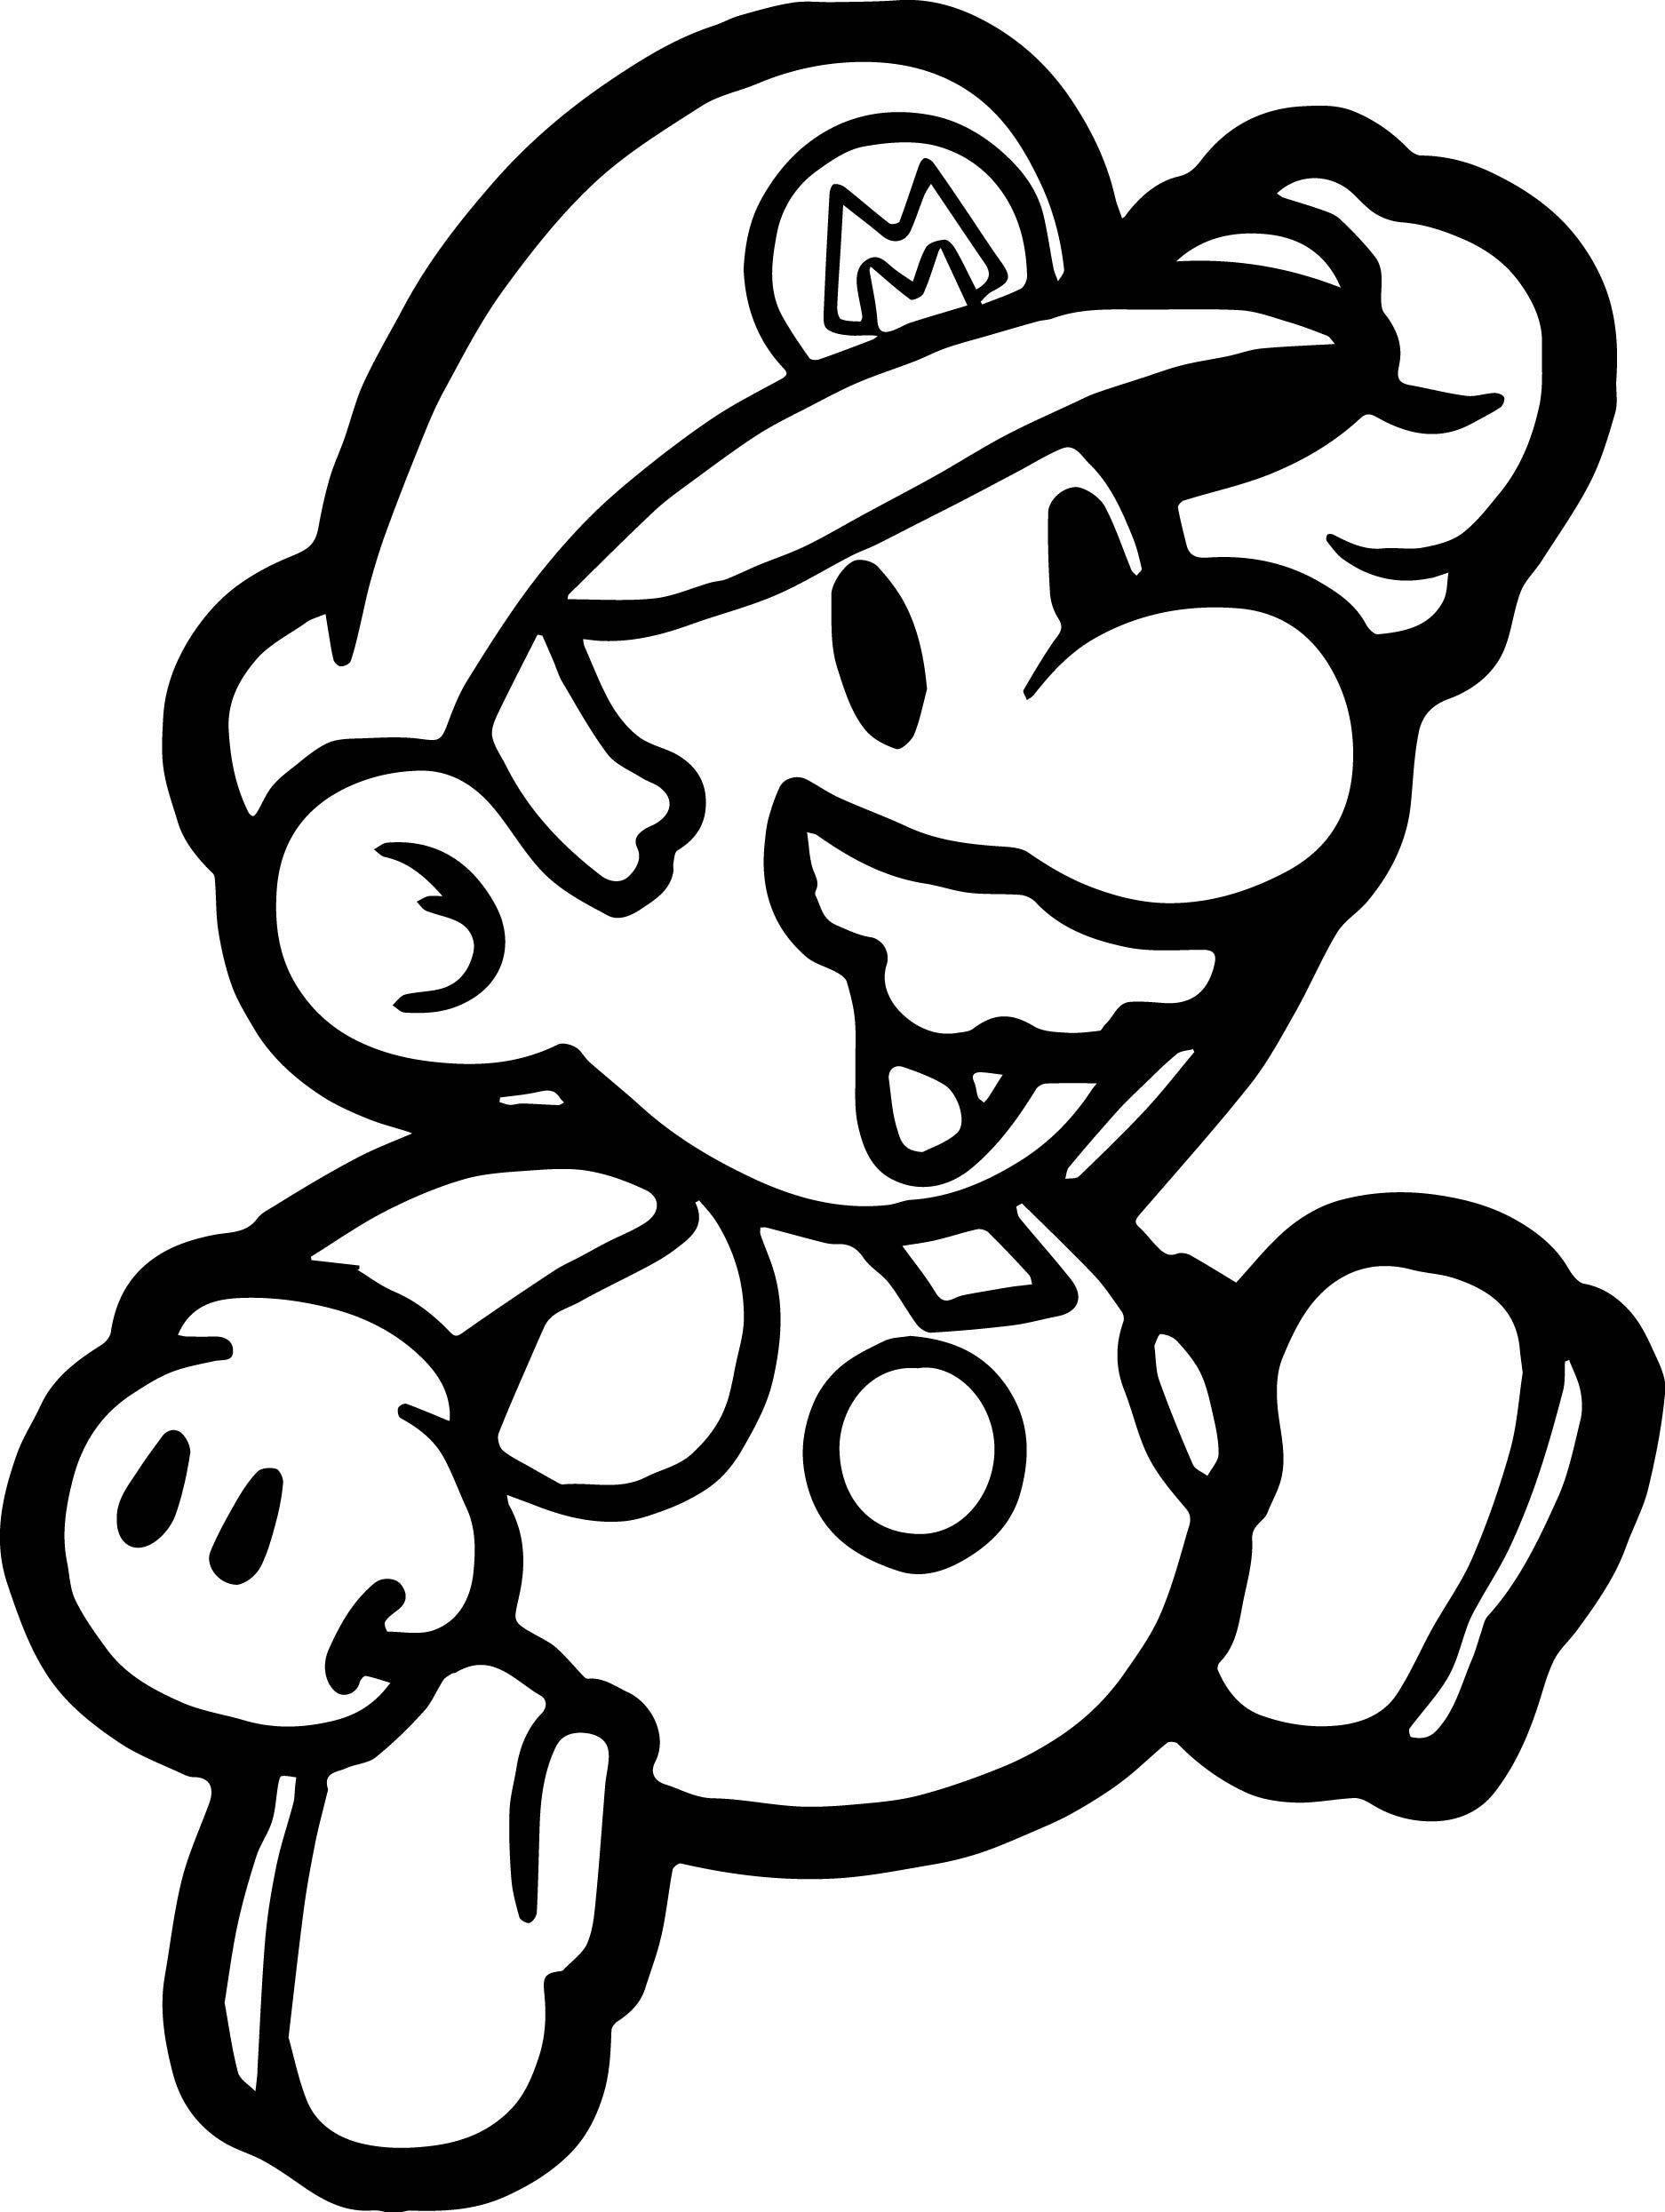 Awesome Paper Mario Coloring Page Mario Coloring Pages Super Mario Coloring Pages Bunny Coloring Pages